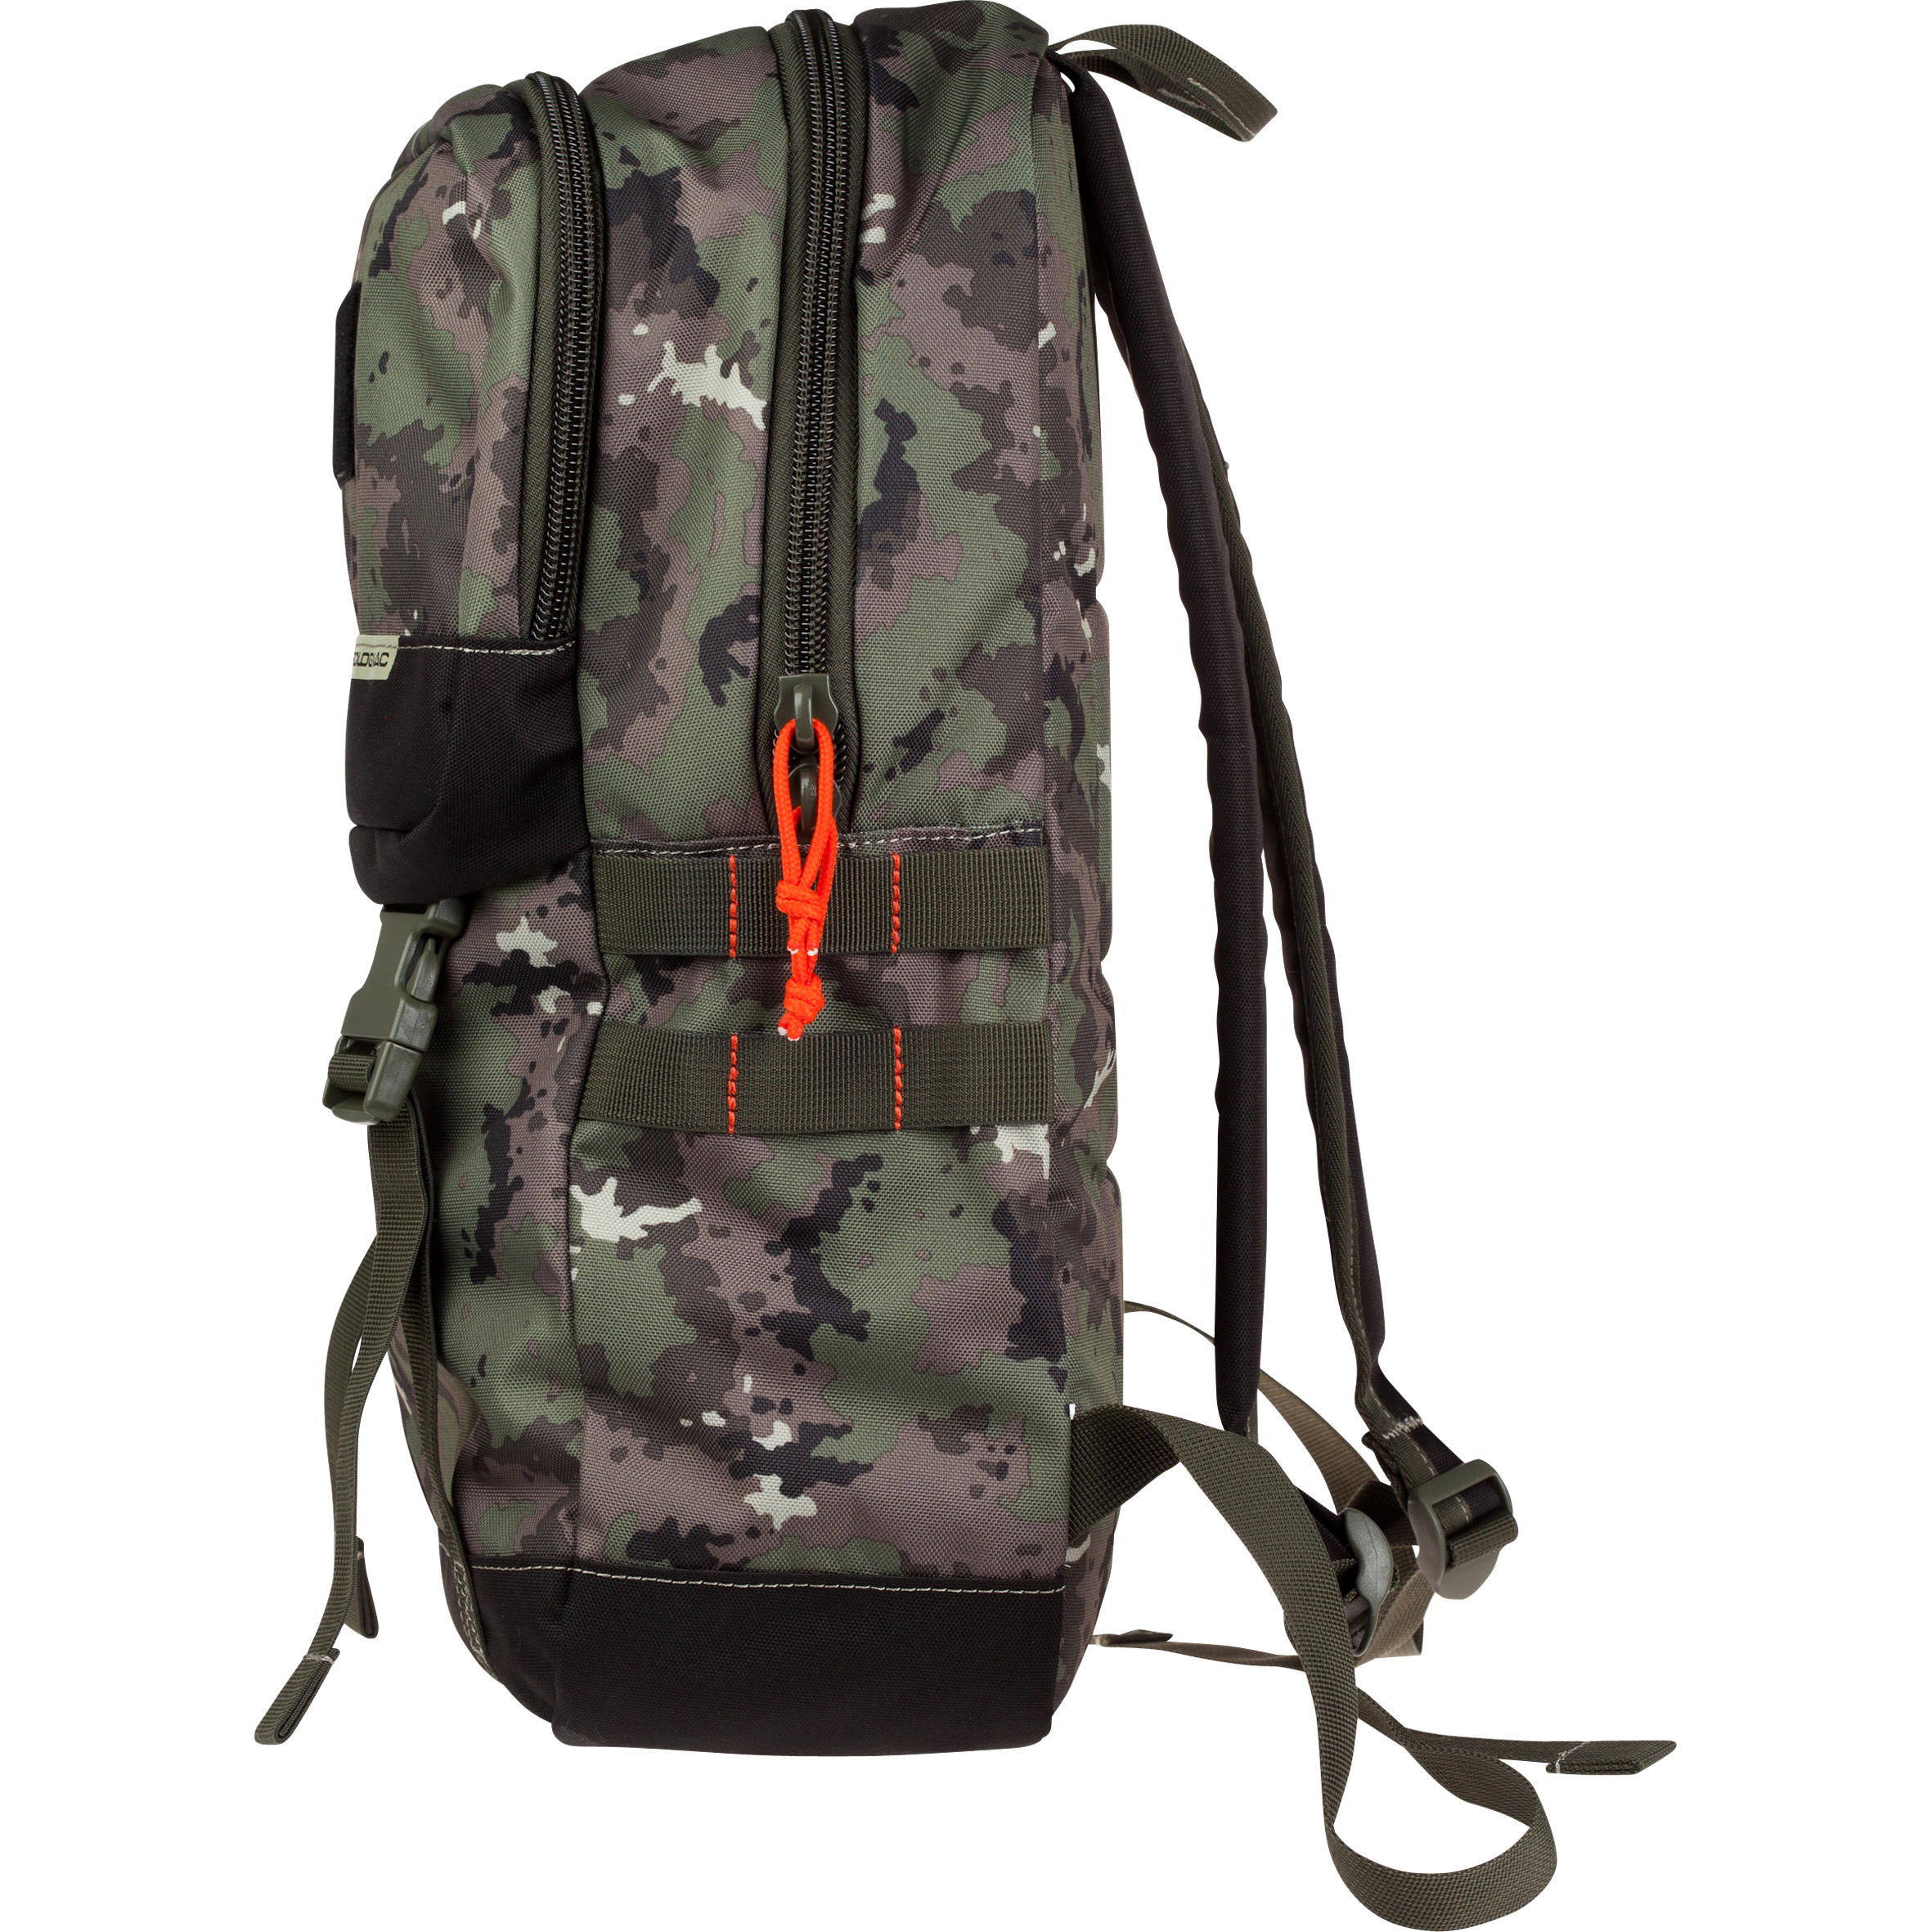 Wildlife Discovery X-Acc Backpack 20 Litre Camo Green